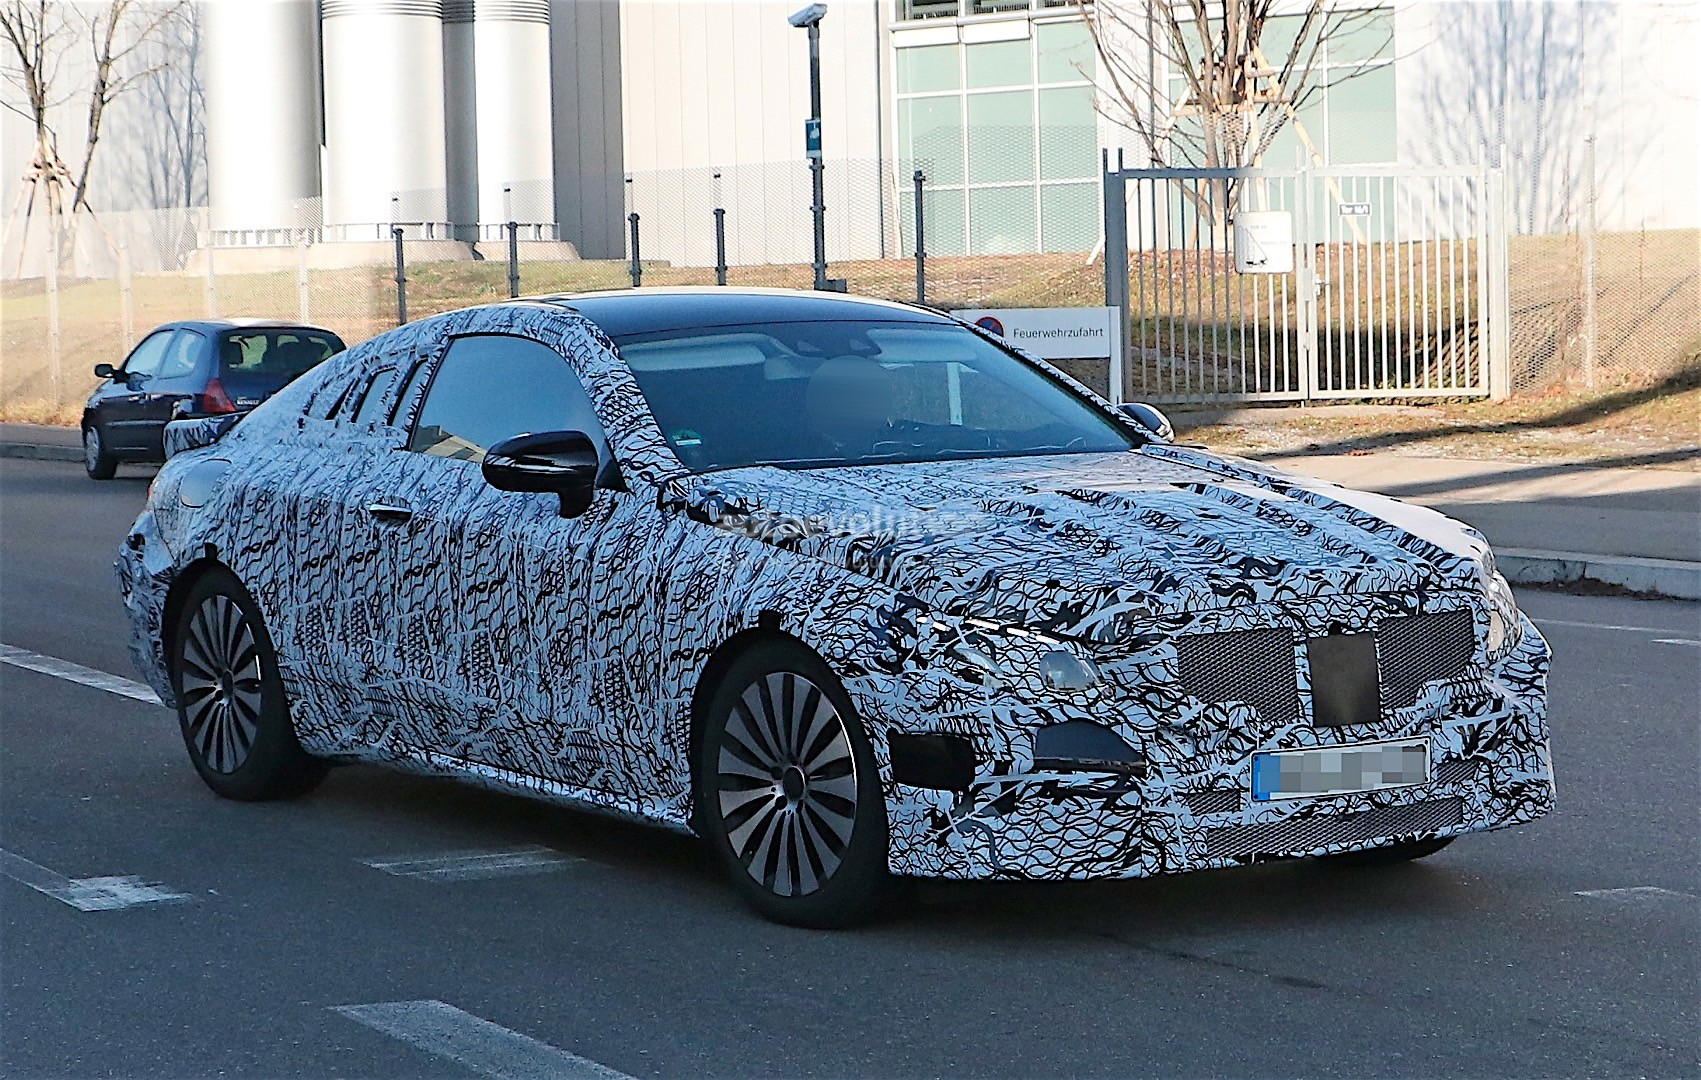 2018-mercedes-benz-e-class-coupe-shows-its-b-pillarless-profile-for-the-first-time_3